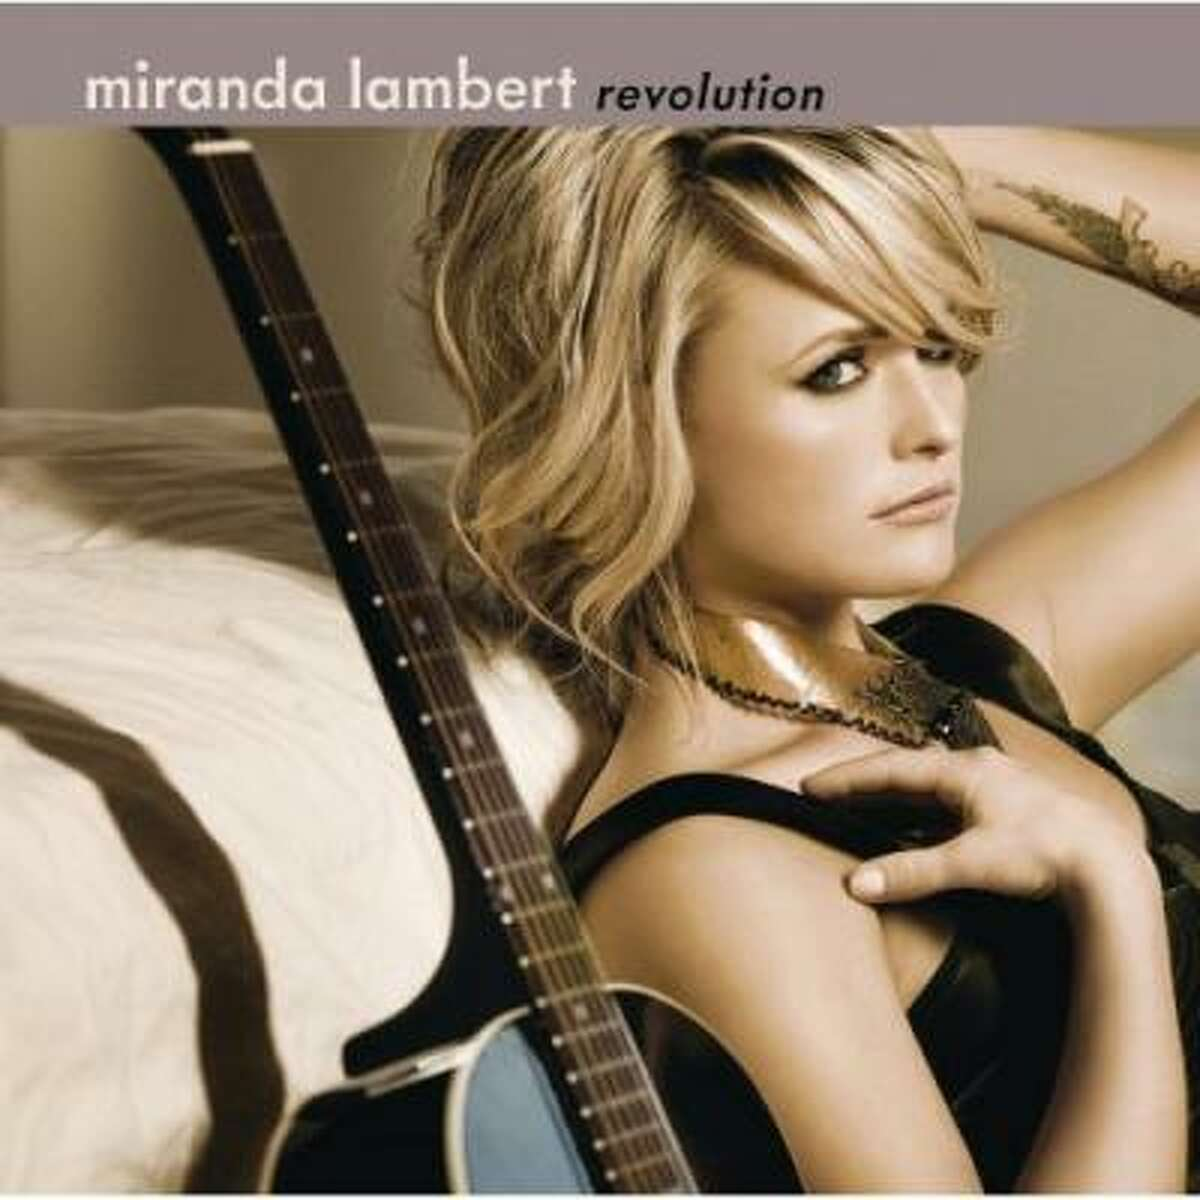 Revolution (4 stars), Miranda Lambert, Columbia Nashville. Over the course of just two albums, Tyler native Miranda Lambert has established herself as the best working performer in country music. Read more about her new album here.